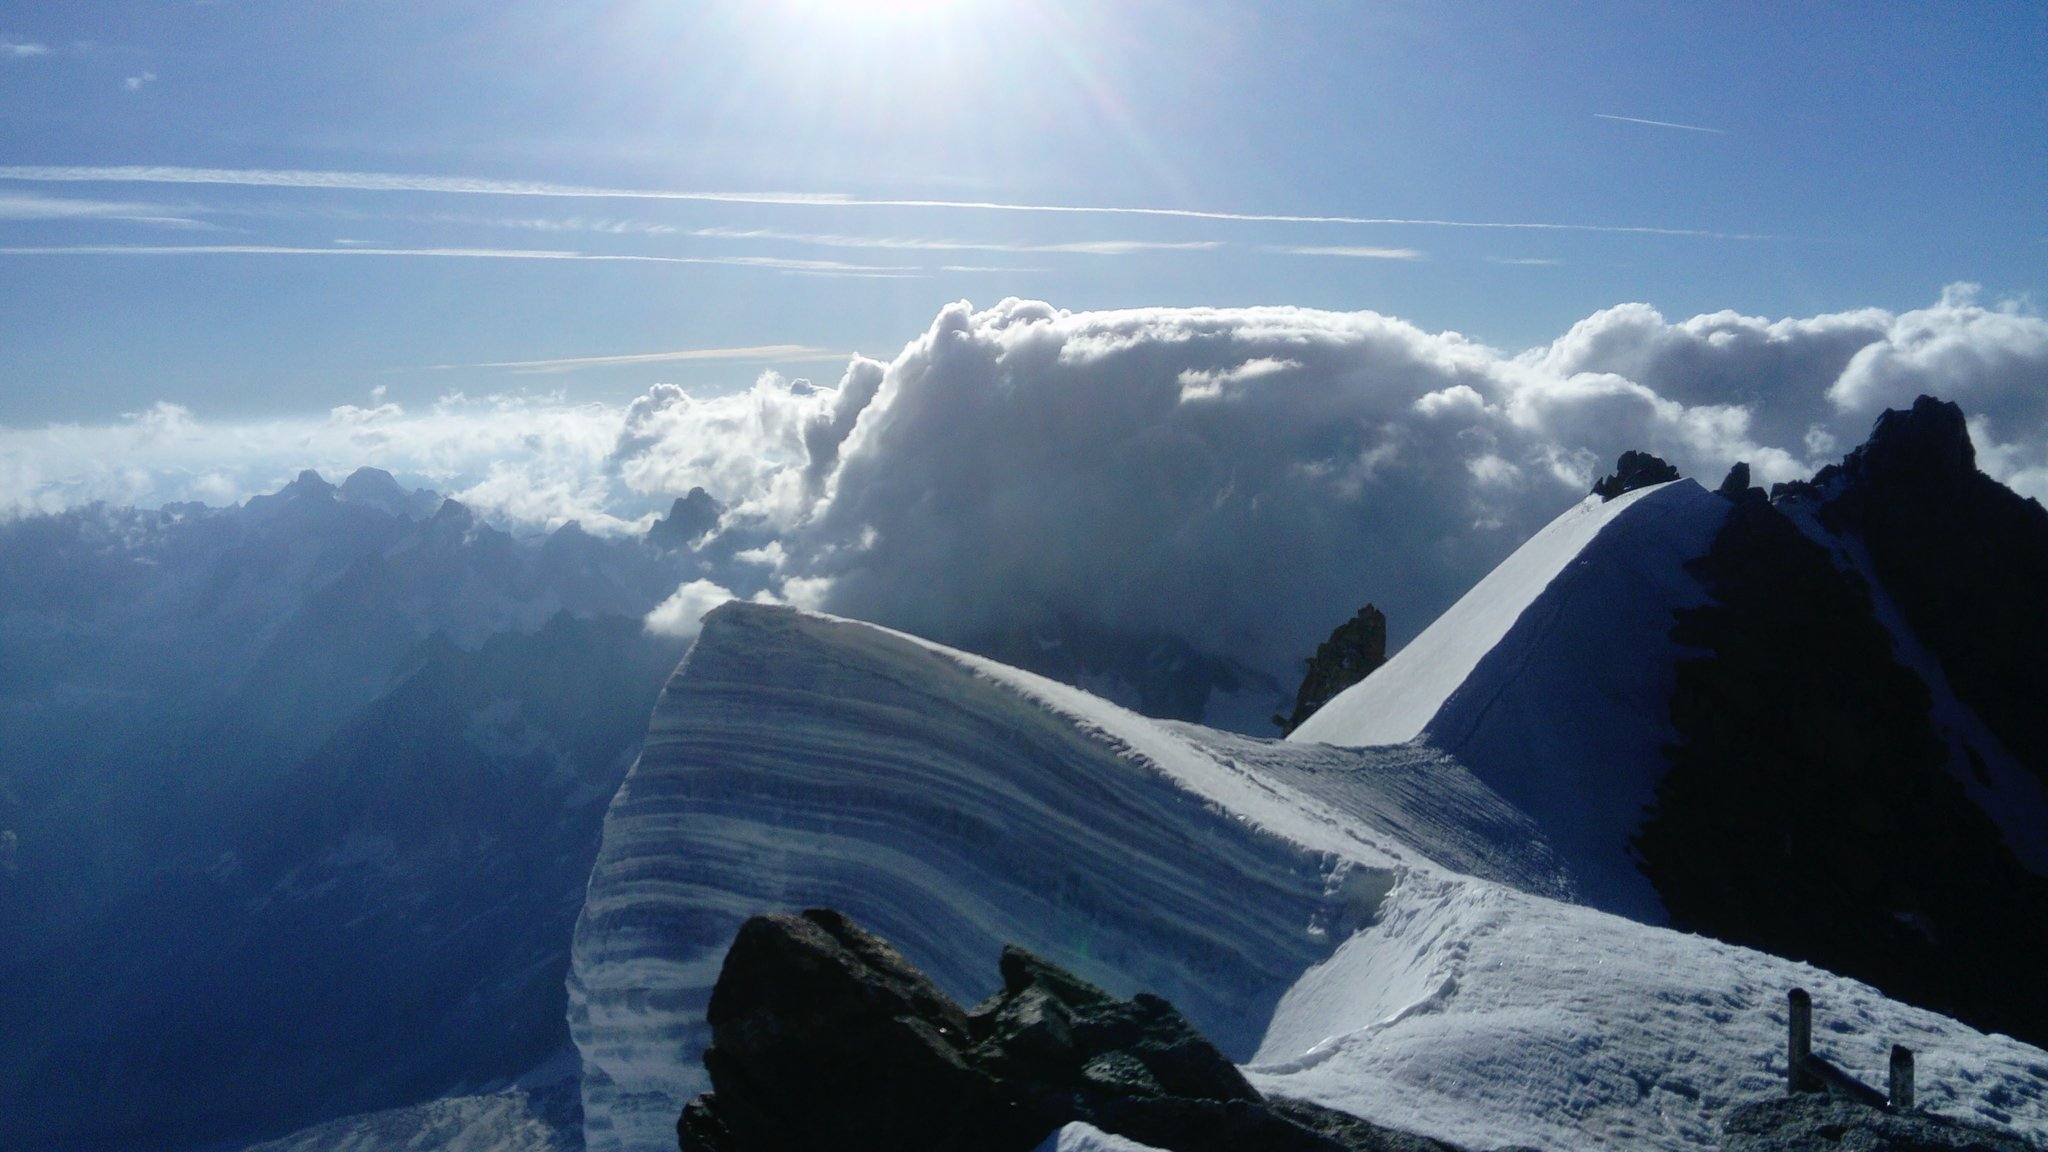 Looking to Italy from summit of Mont Blanc du Tacul